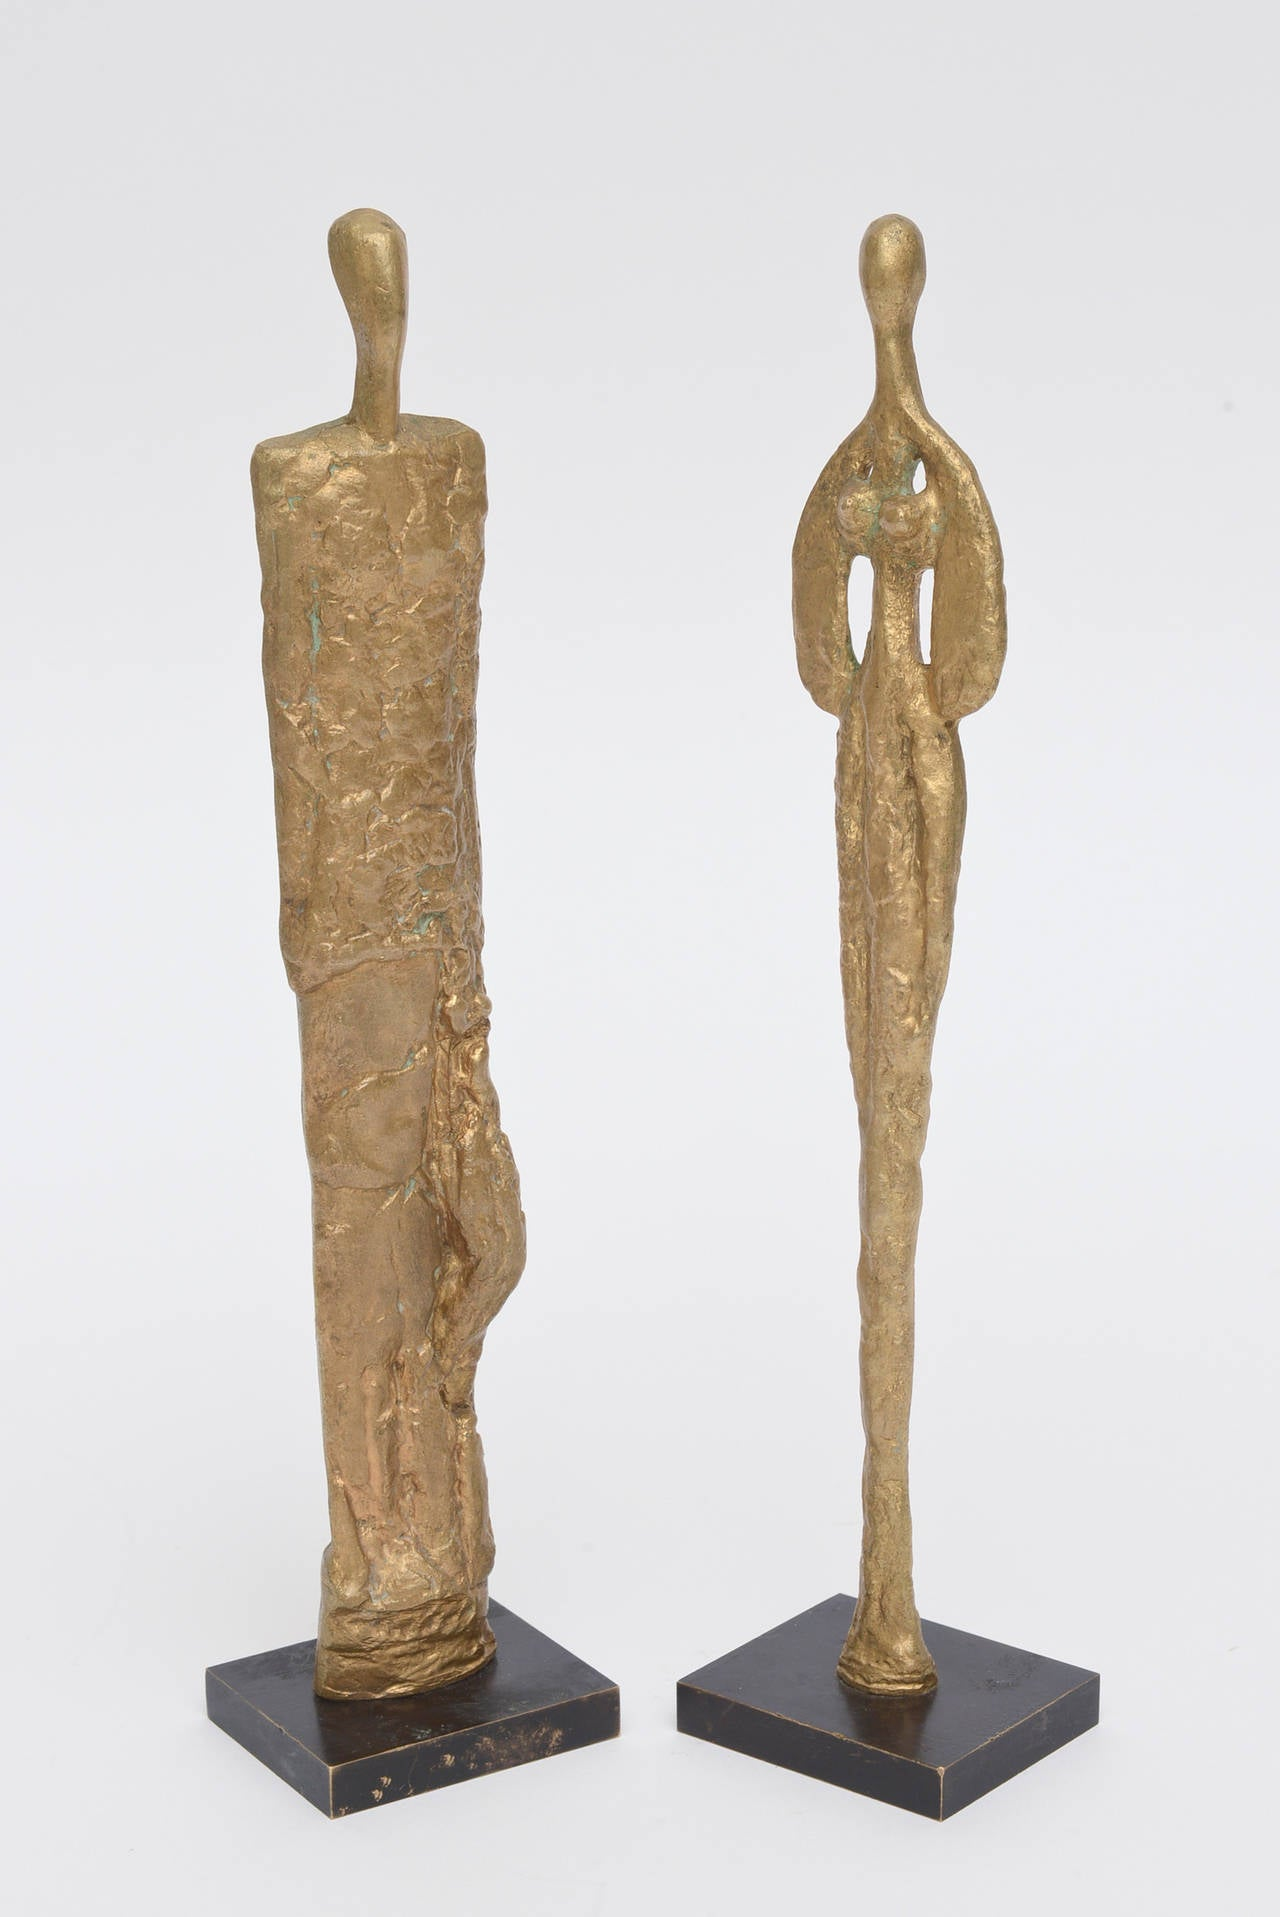 These amazing pair of bronze sculptures of male or female forms are so very much in the style of Giacometti. They are molten bronze and are European. The small square bases are also bronze. The color of the bronze is a rich golden color with texture